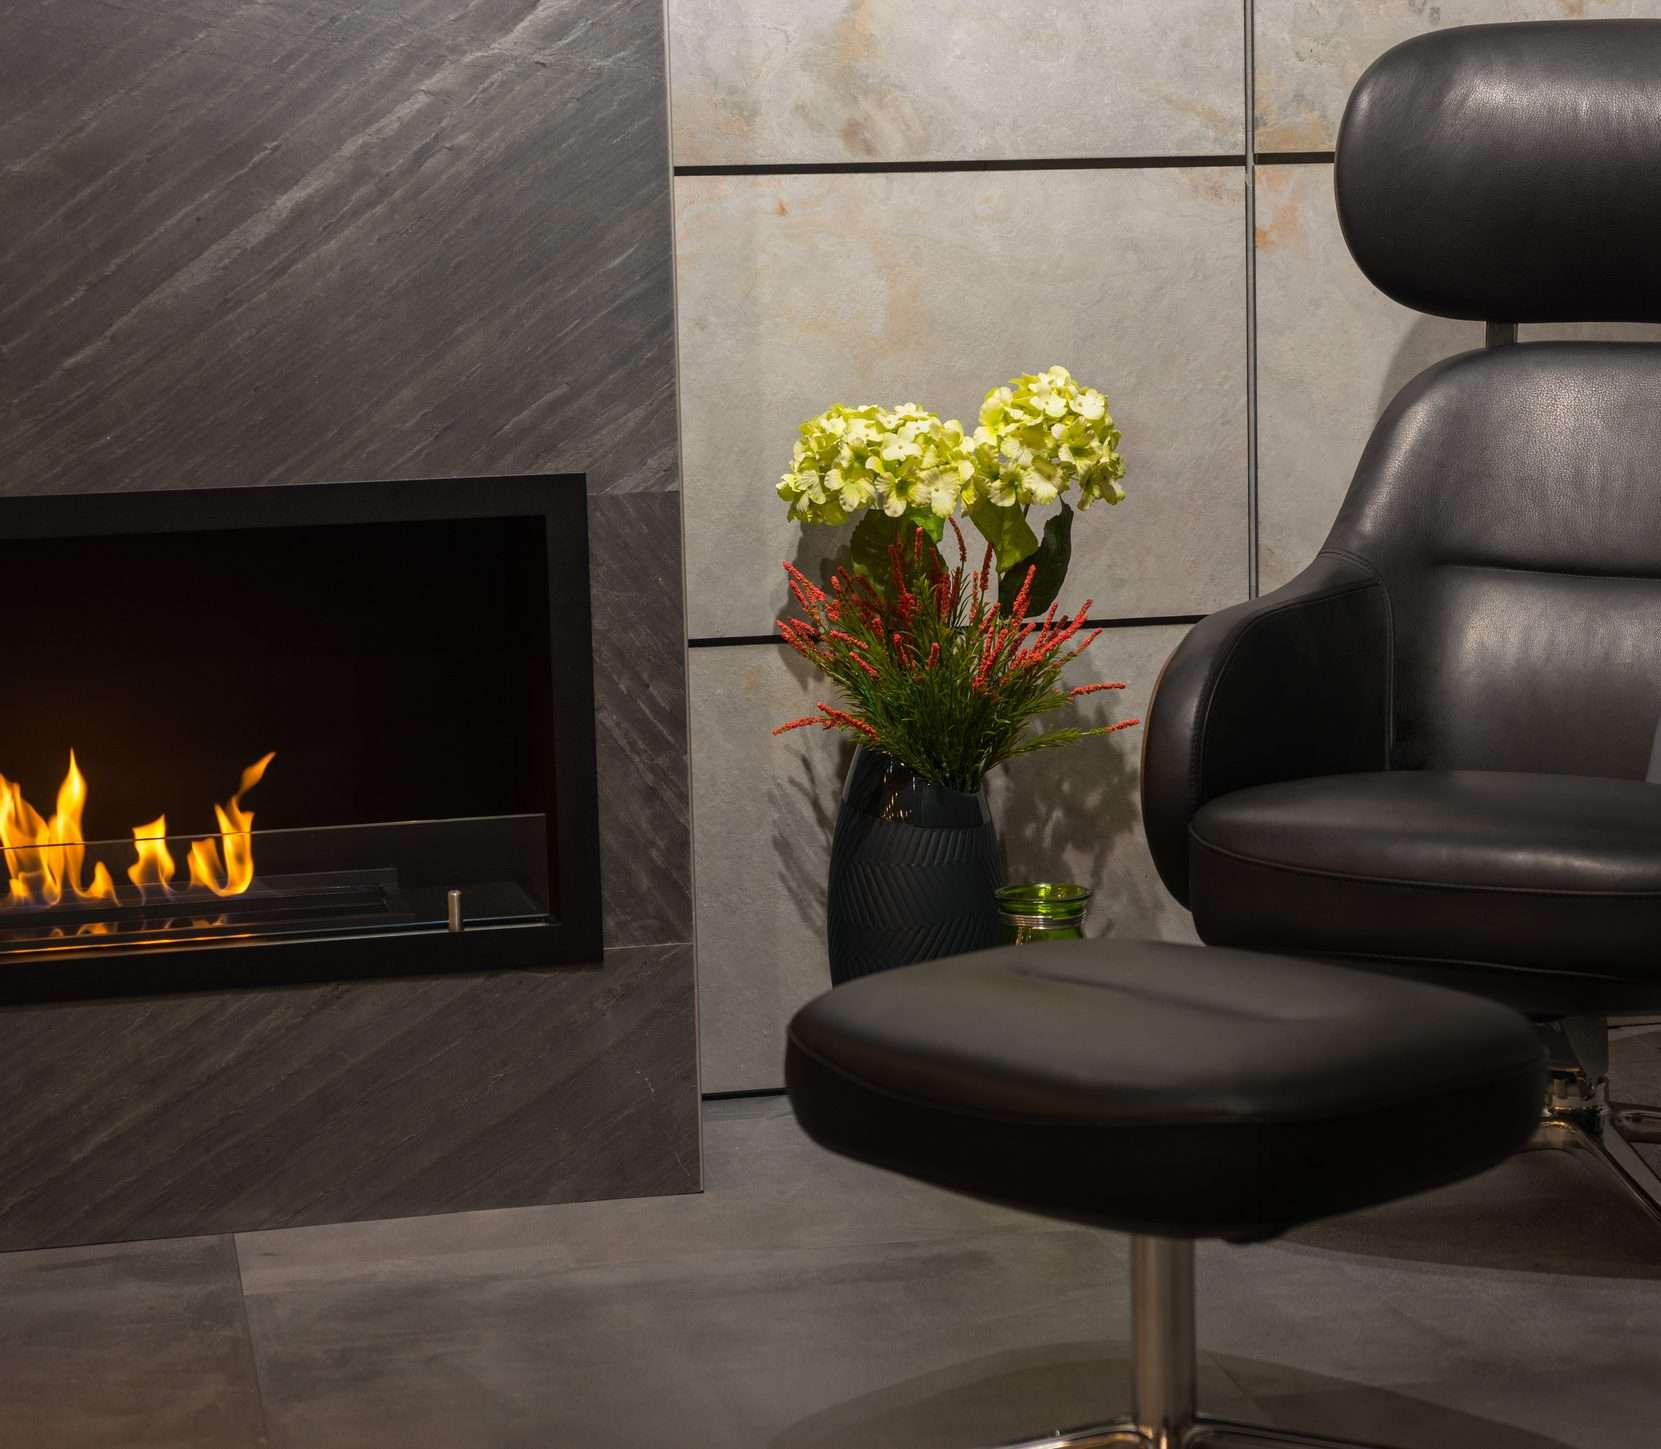 An image of a chair and a fireplace